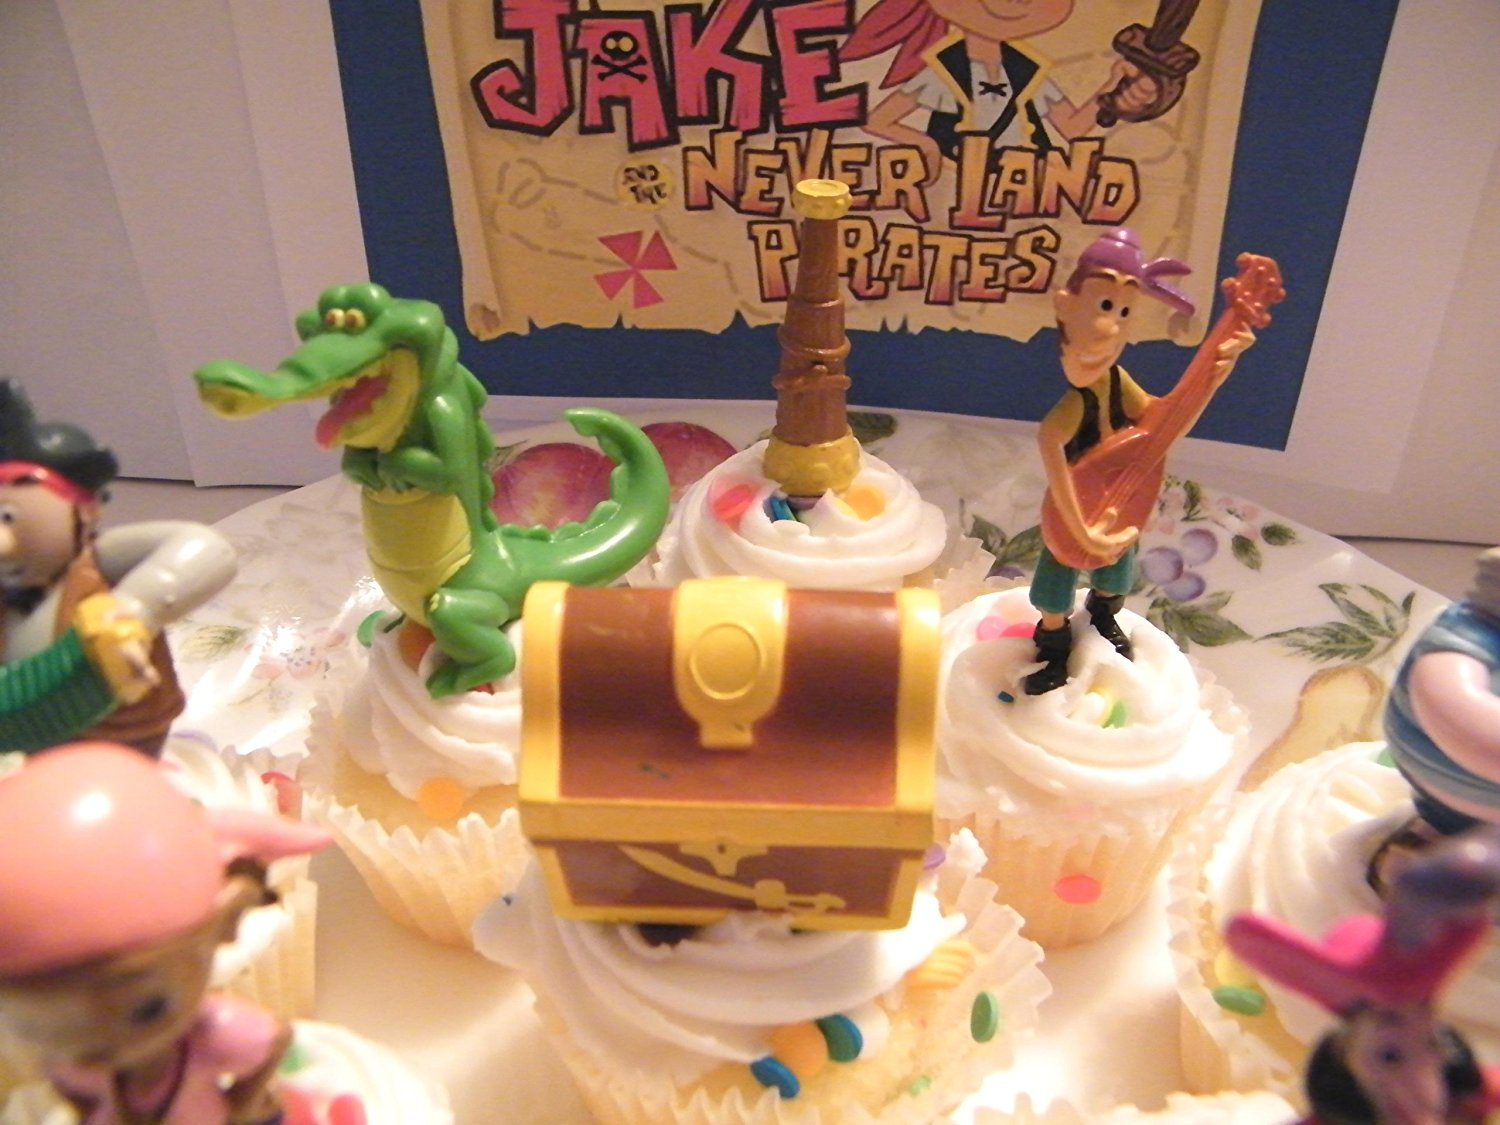 Fantastic Disney Jake And The Never Land Pirates Figure Cake Toppers Funny Birthday Cards Online Elaedamsfinfo